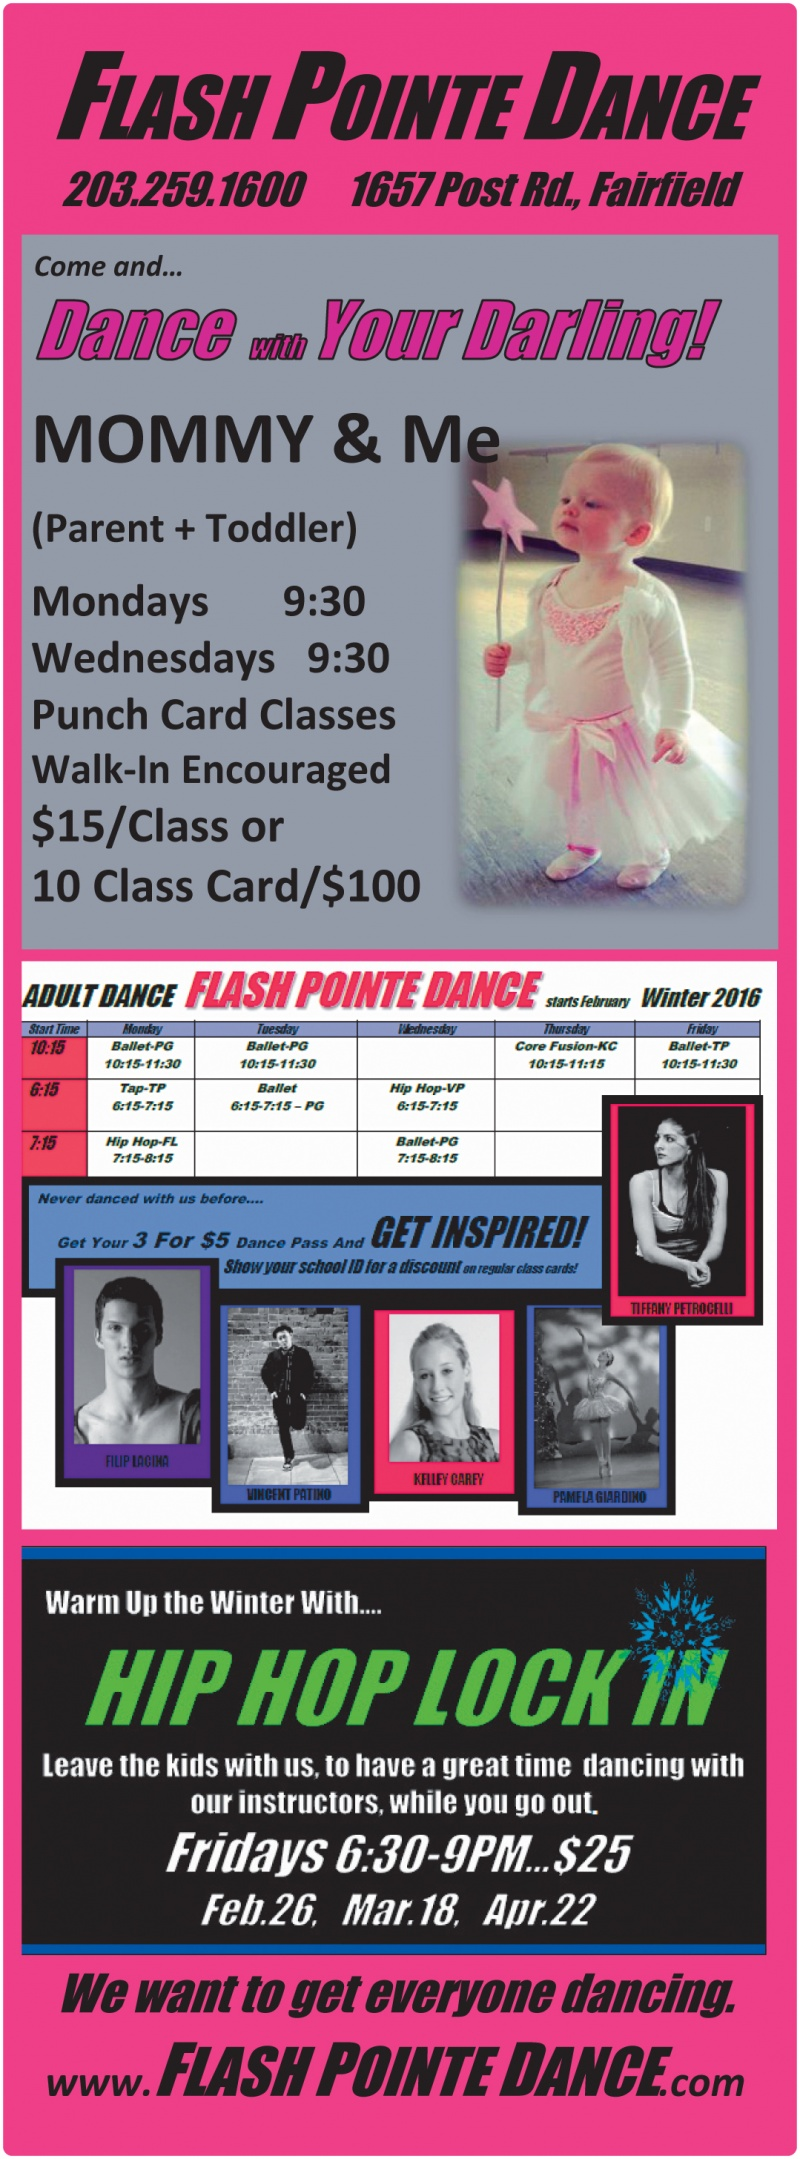 Flash Pointe Dance